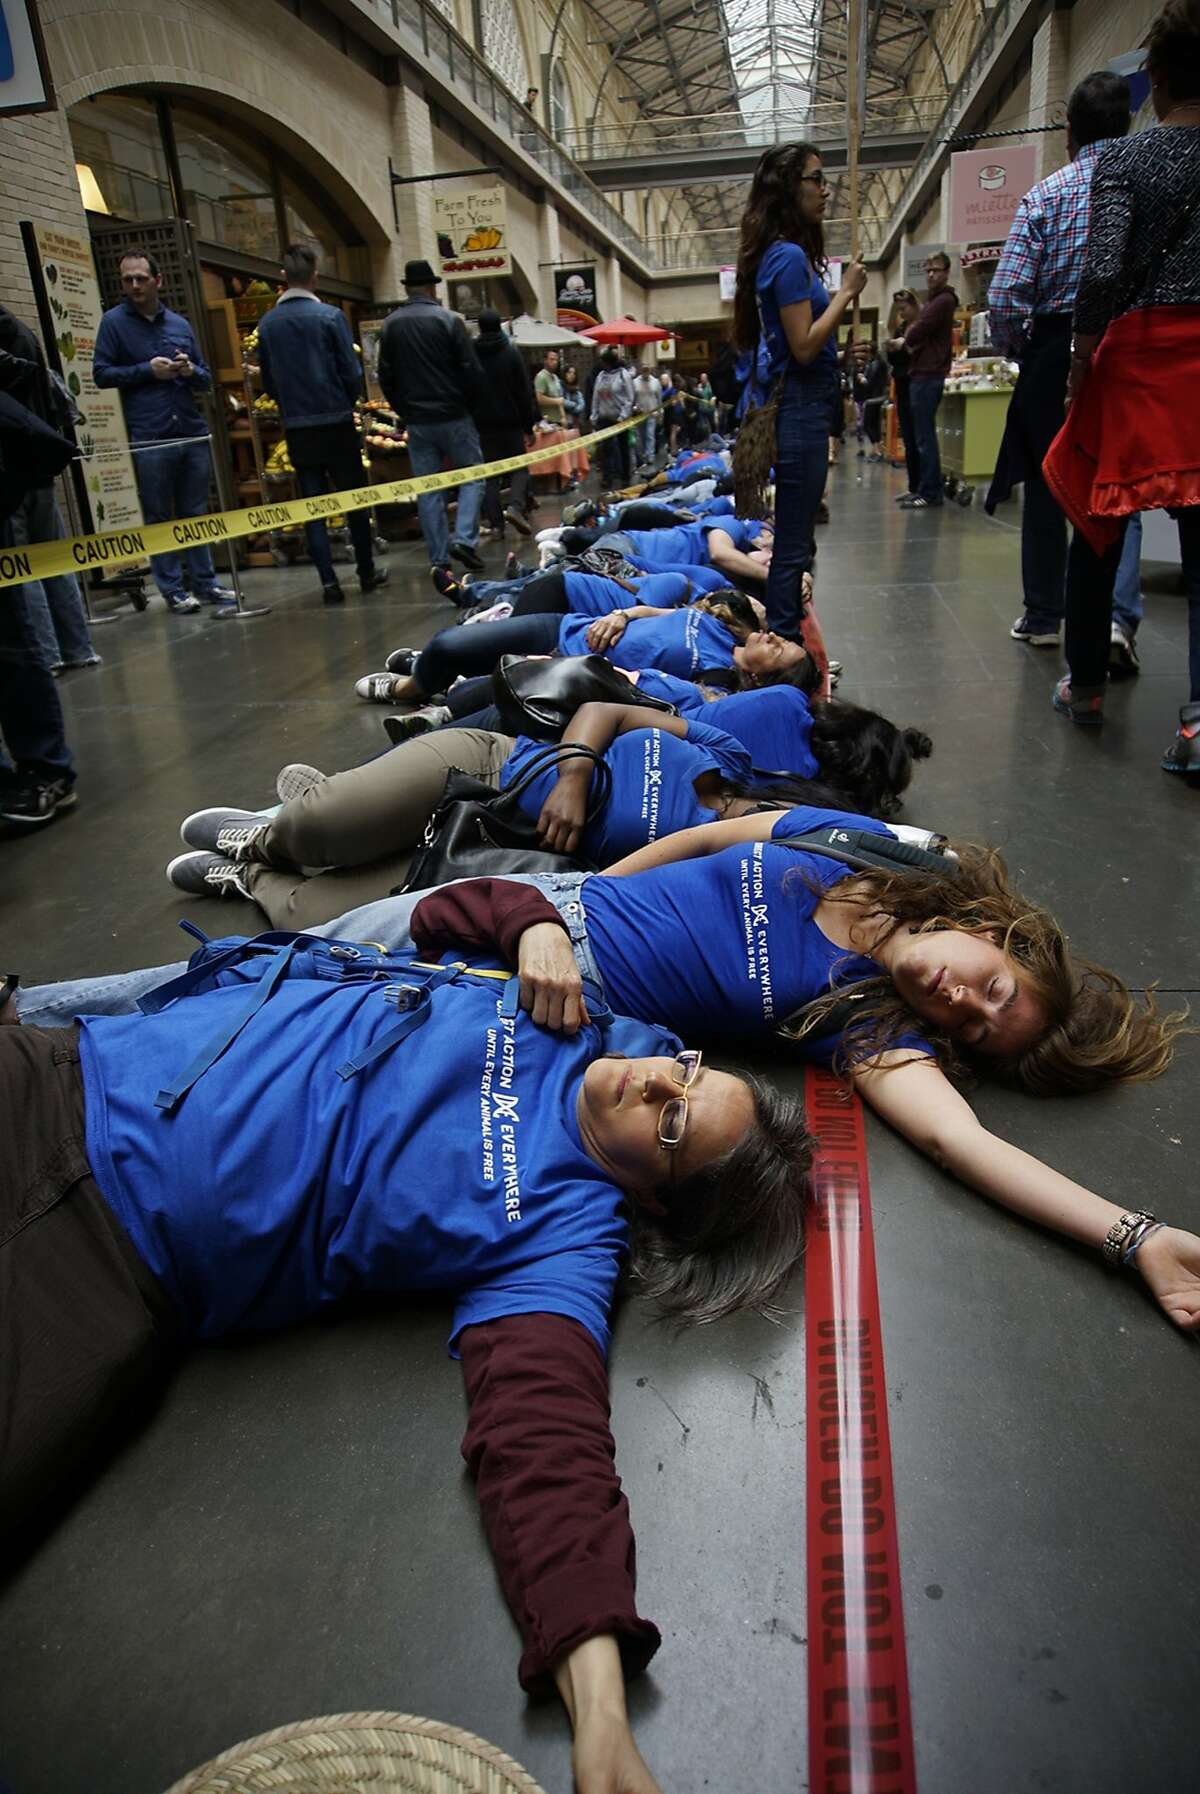 """Anita Krajnc (foreground) lay with 350 people of Direct Action Everywhere, spanning the full length of the Ferry Building, in what they describe as a """"die-in"""" on Sunday, May 28 2017 in San Francisco, CA."""